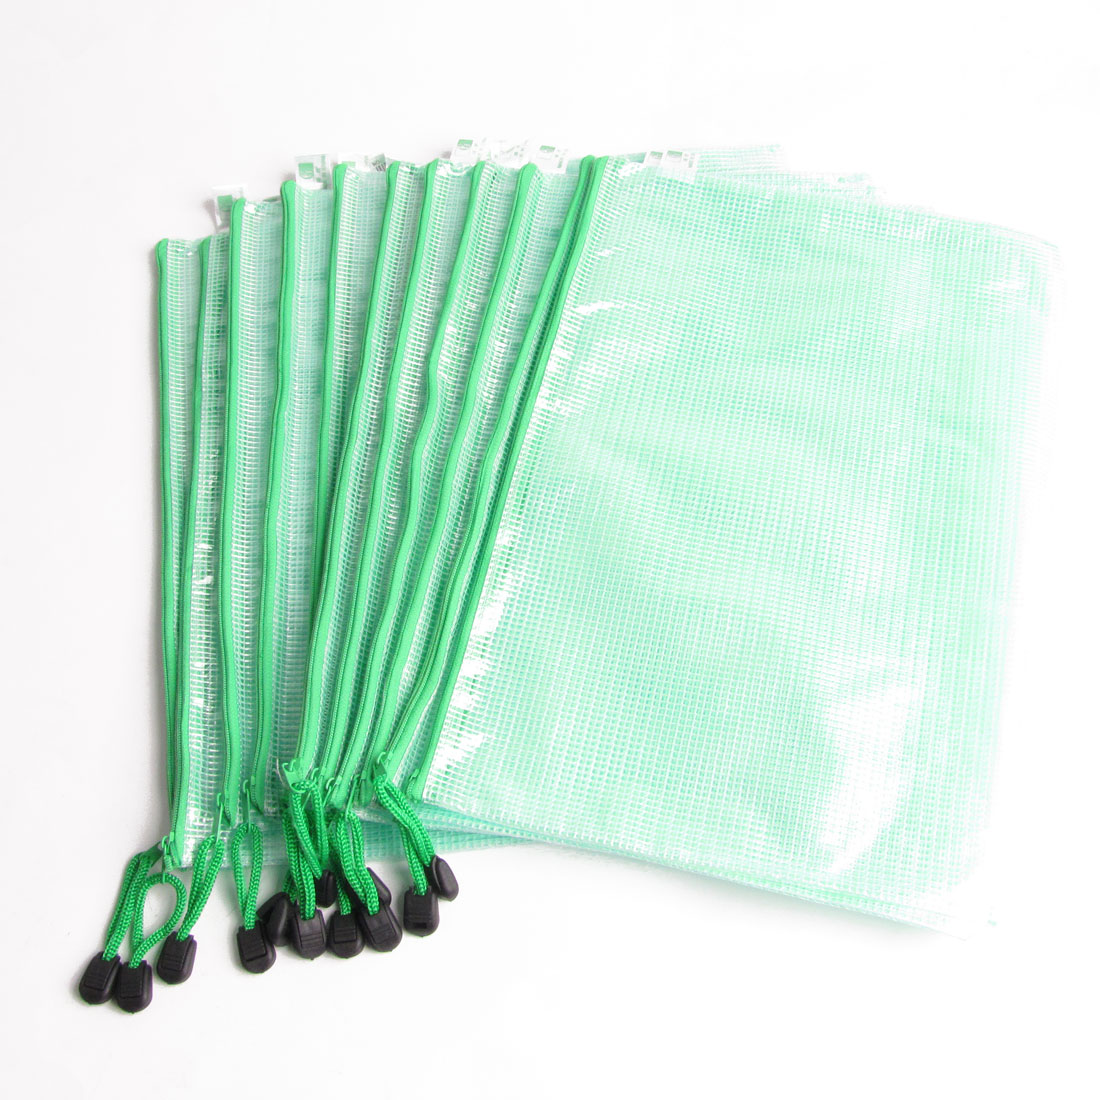 Zipper Closure Green Plastic A4 Size Paper File Holder Bag 12 Pcs